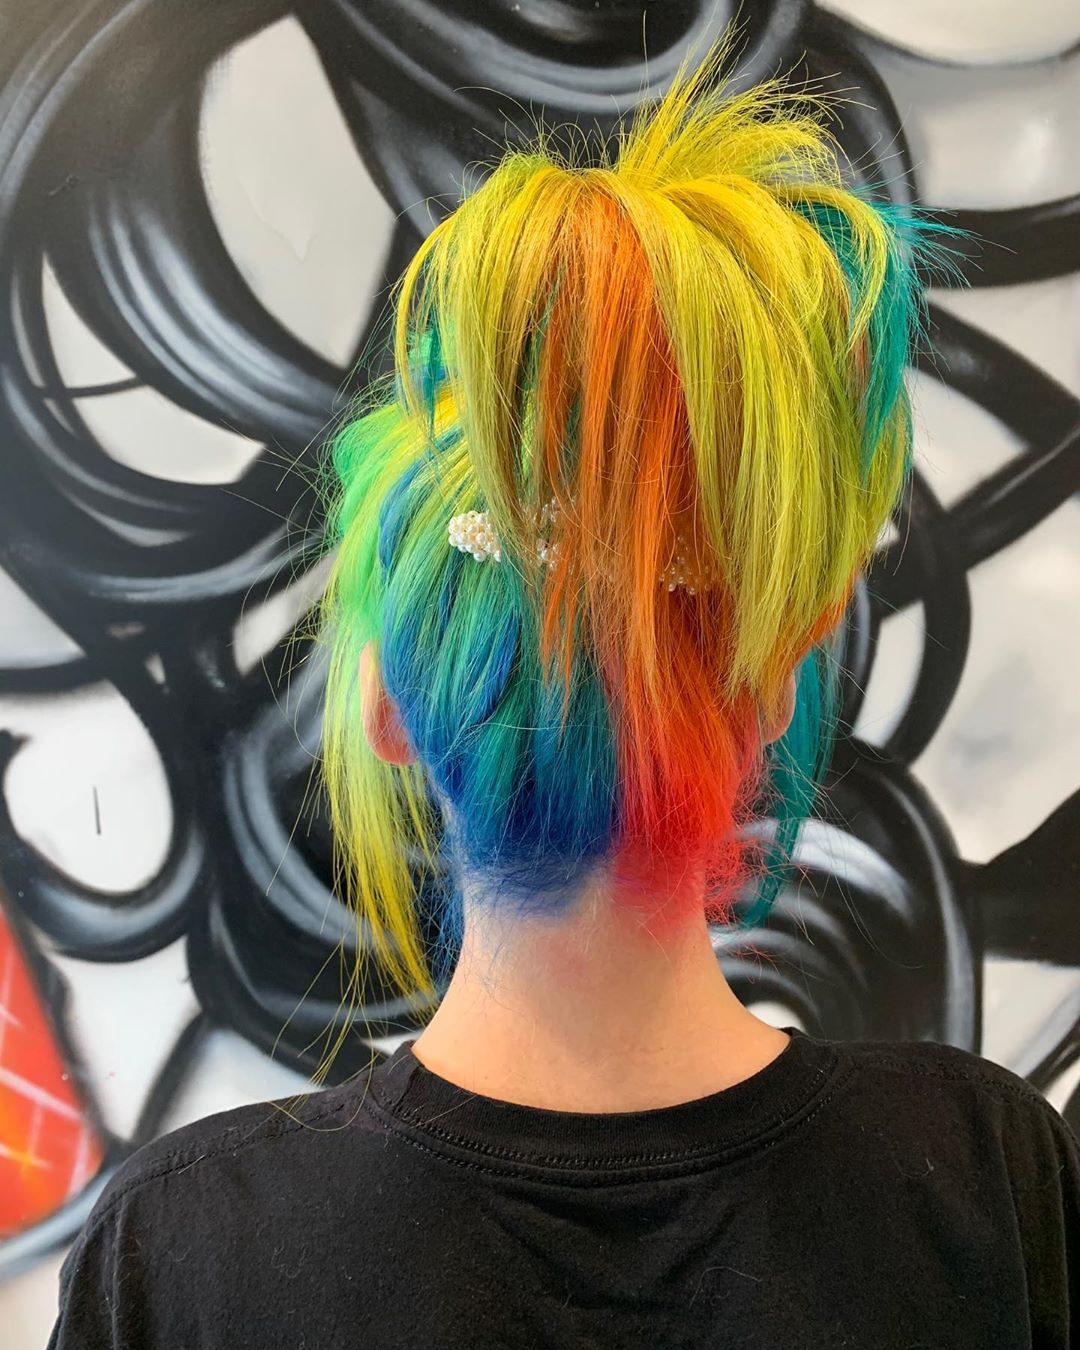 Hair By One Of My Favorite People Right Hairgoals - Hairstyles For Girls